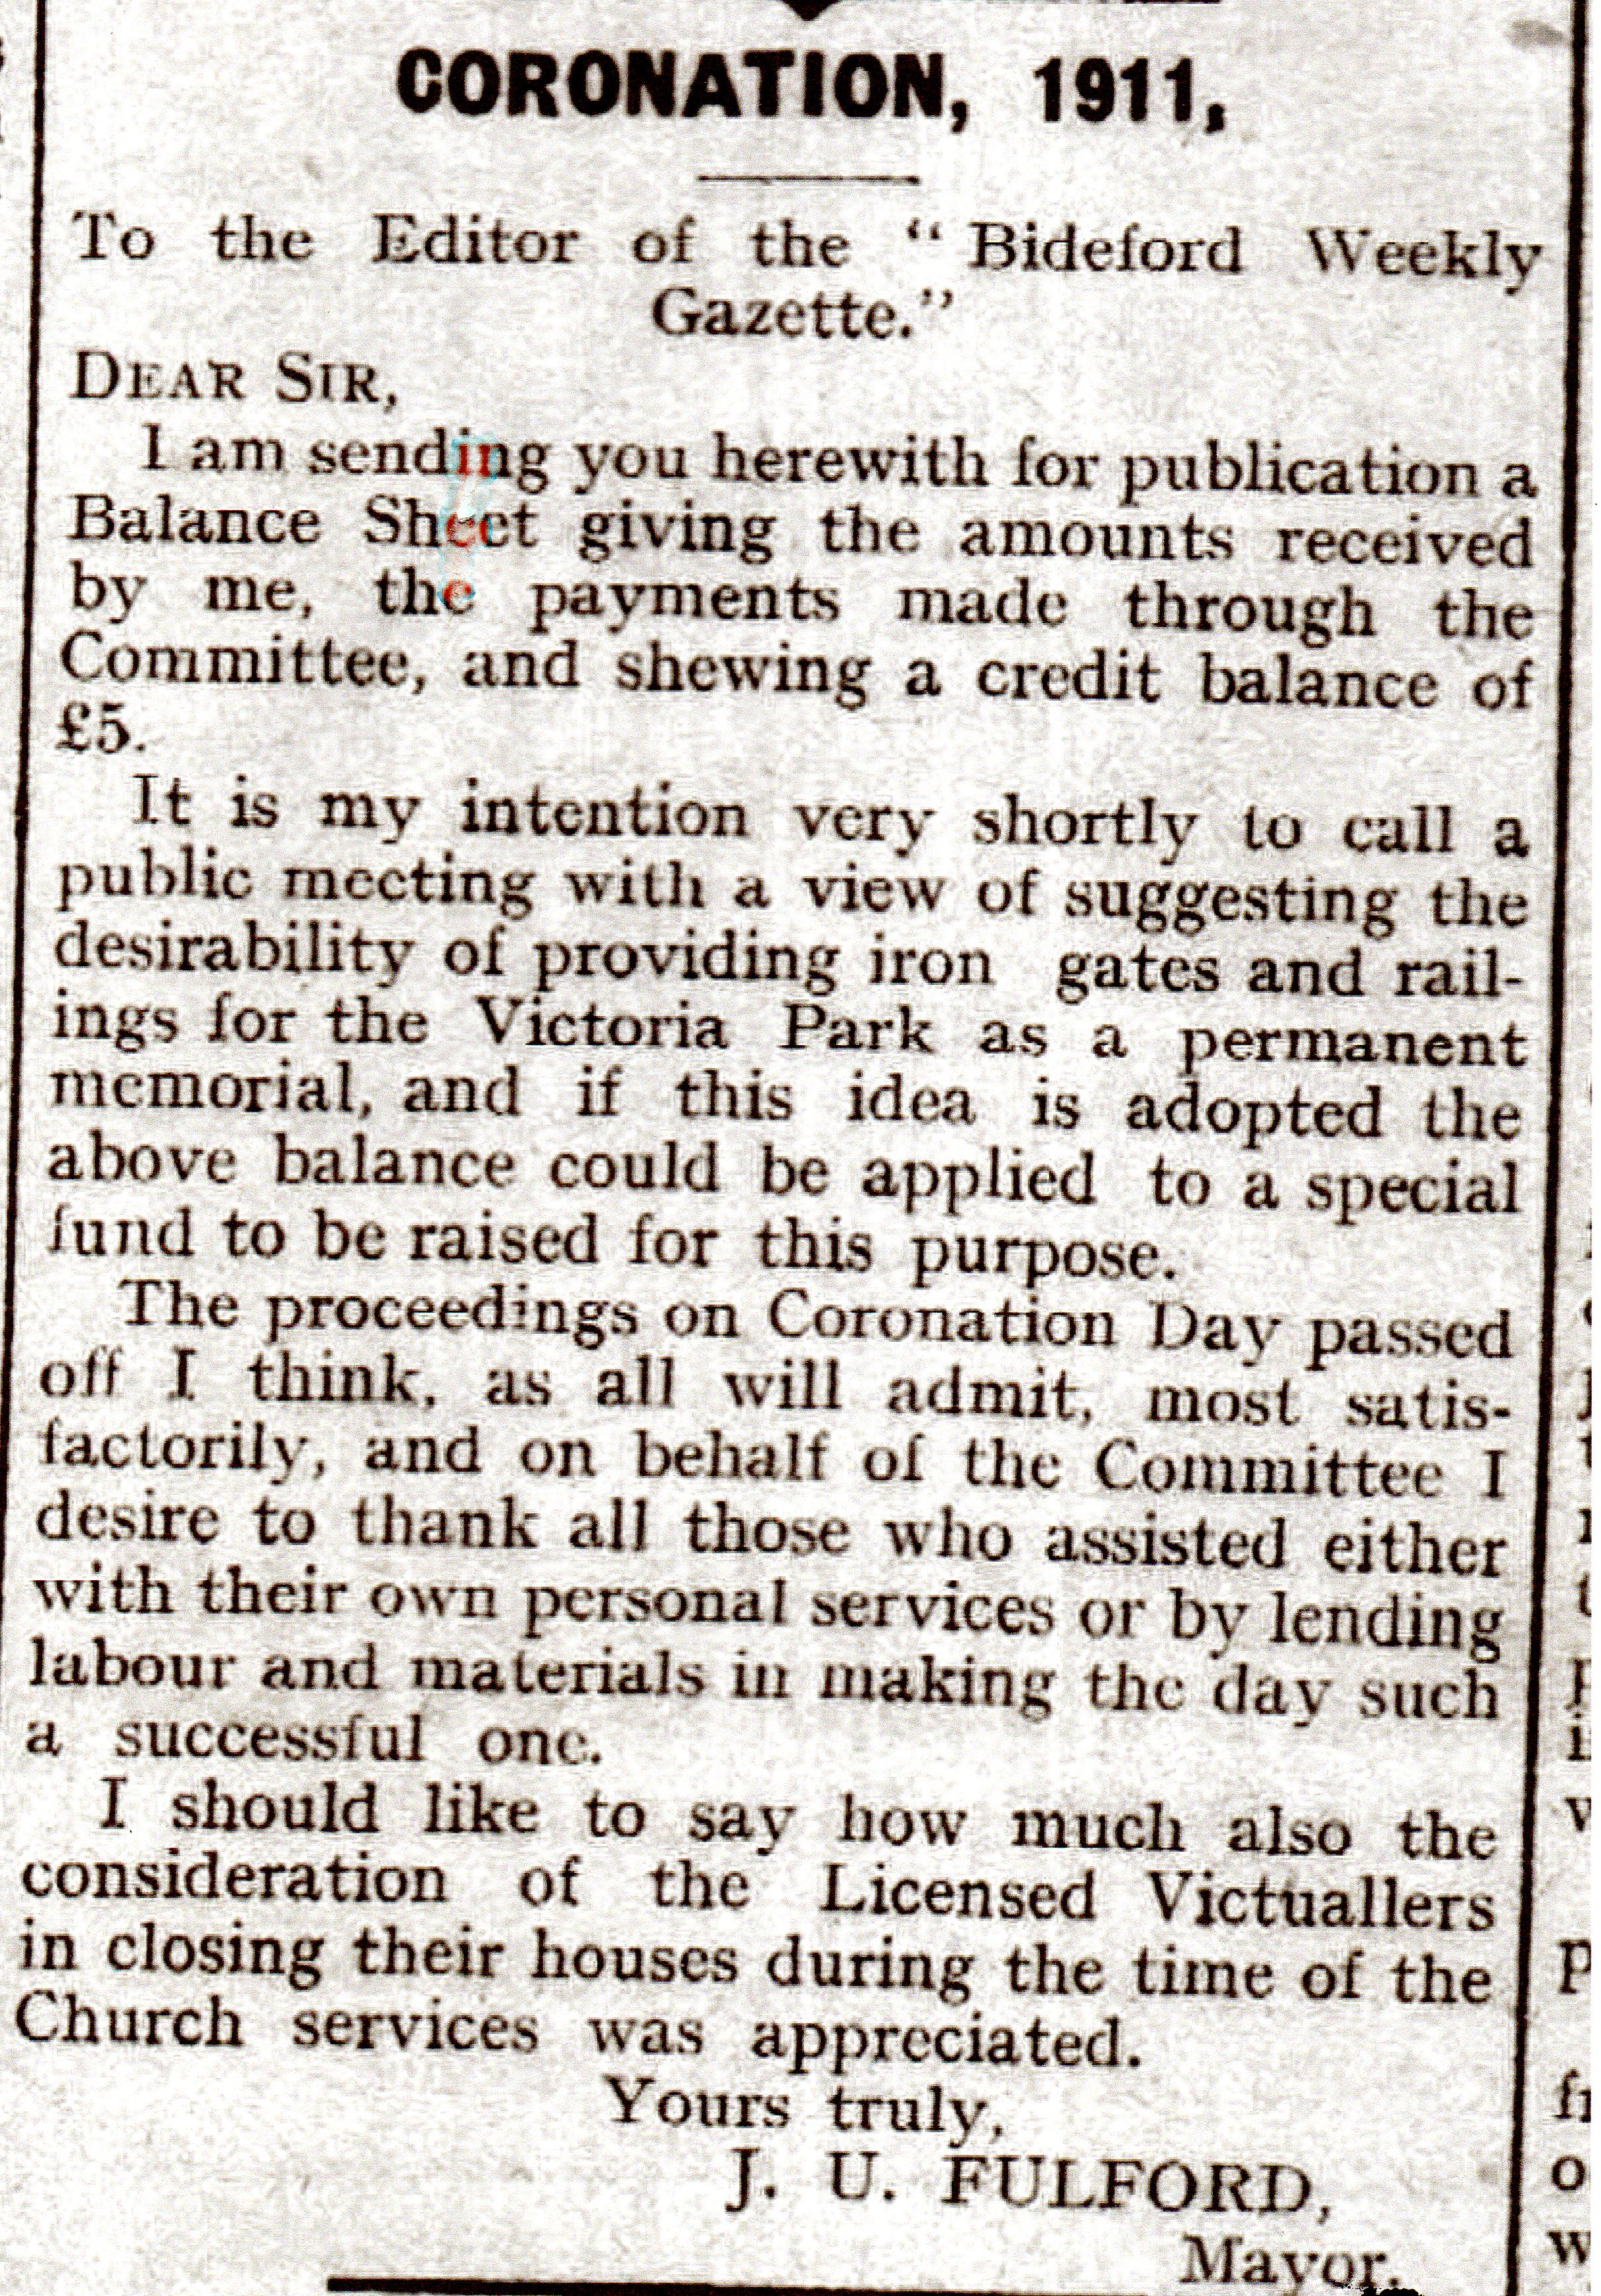 1911 Coronation Letter from Mayor